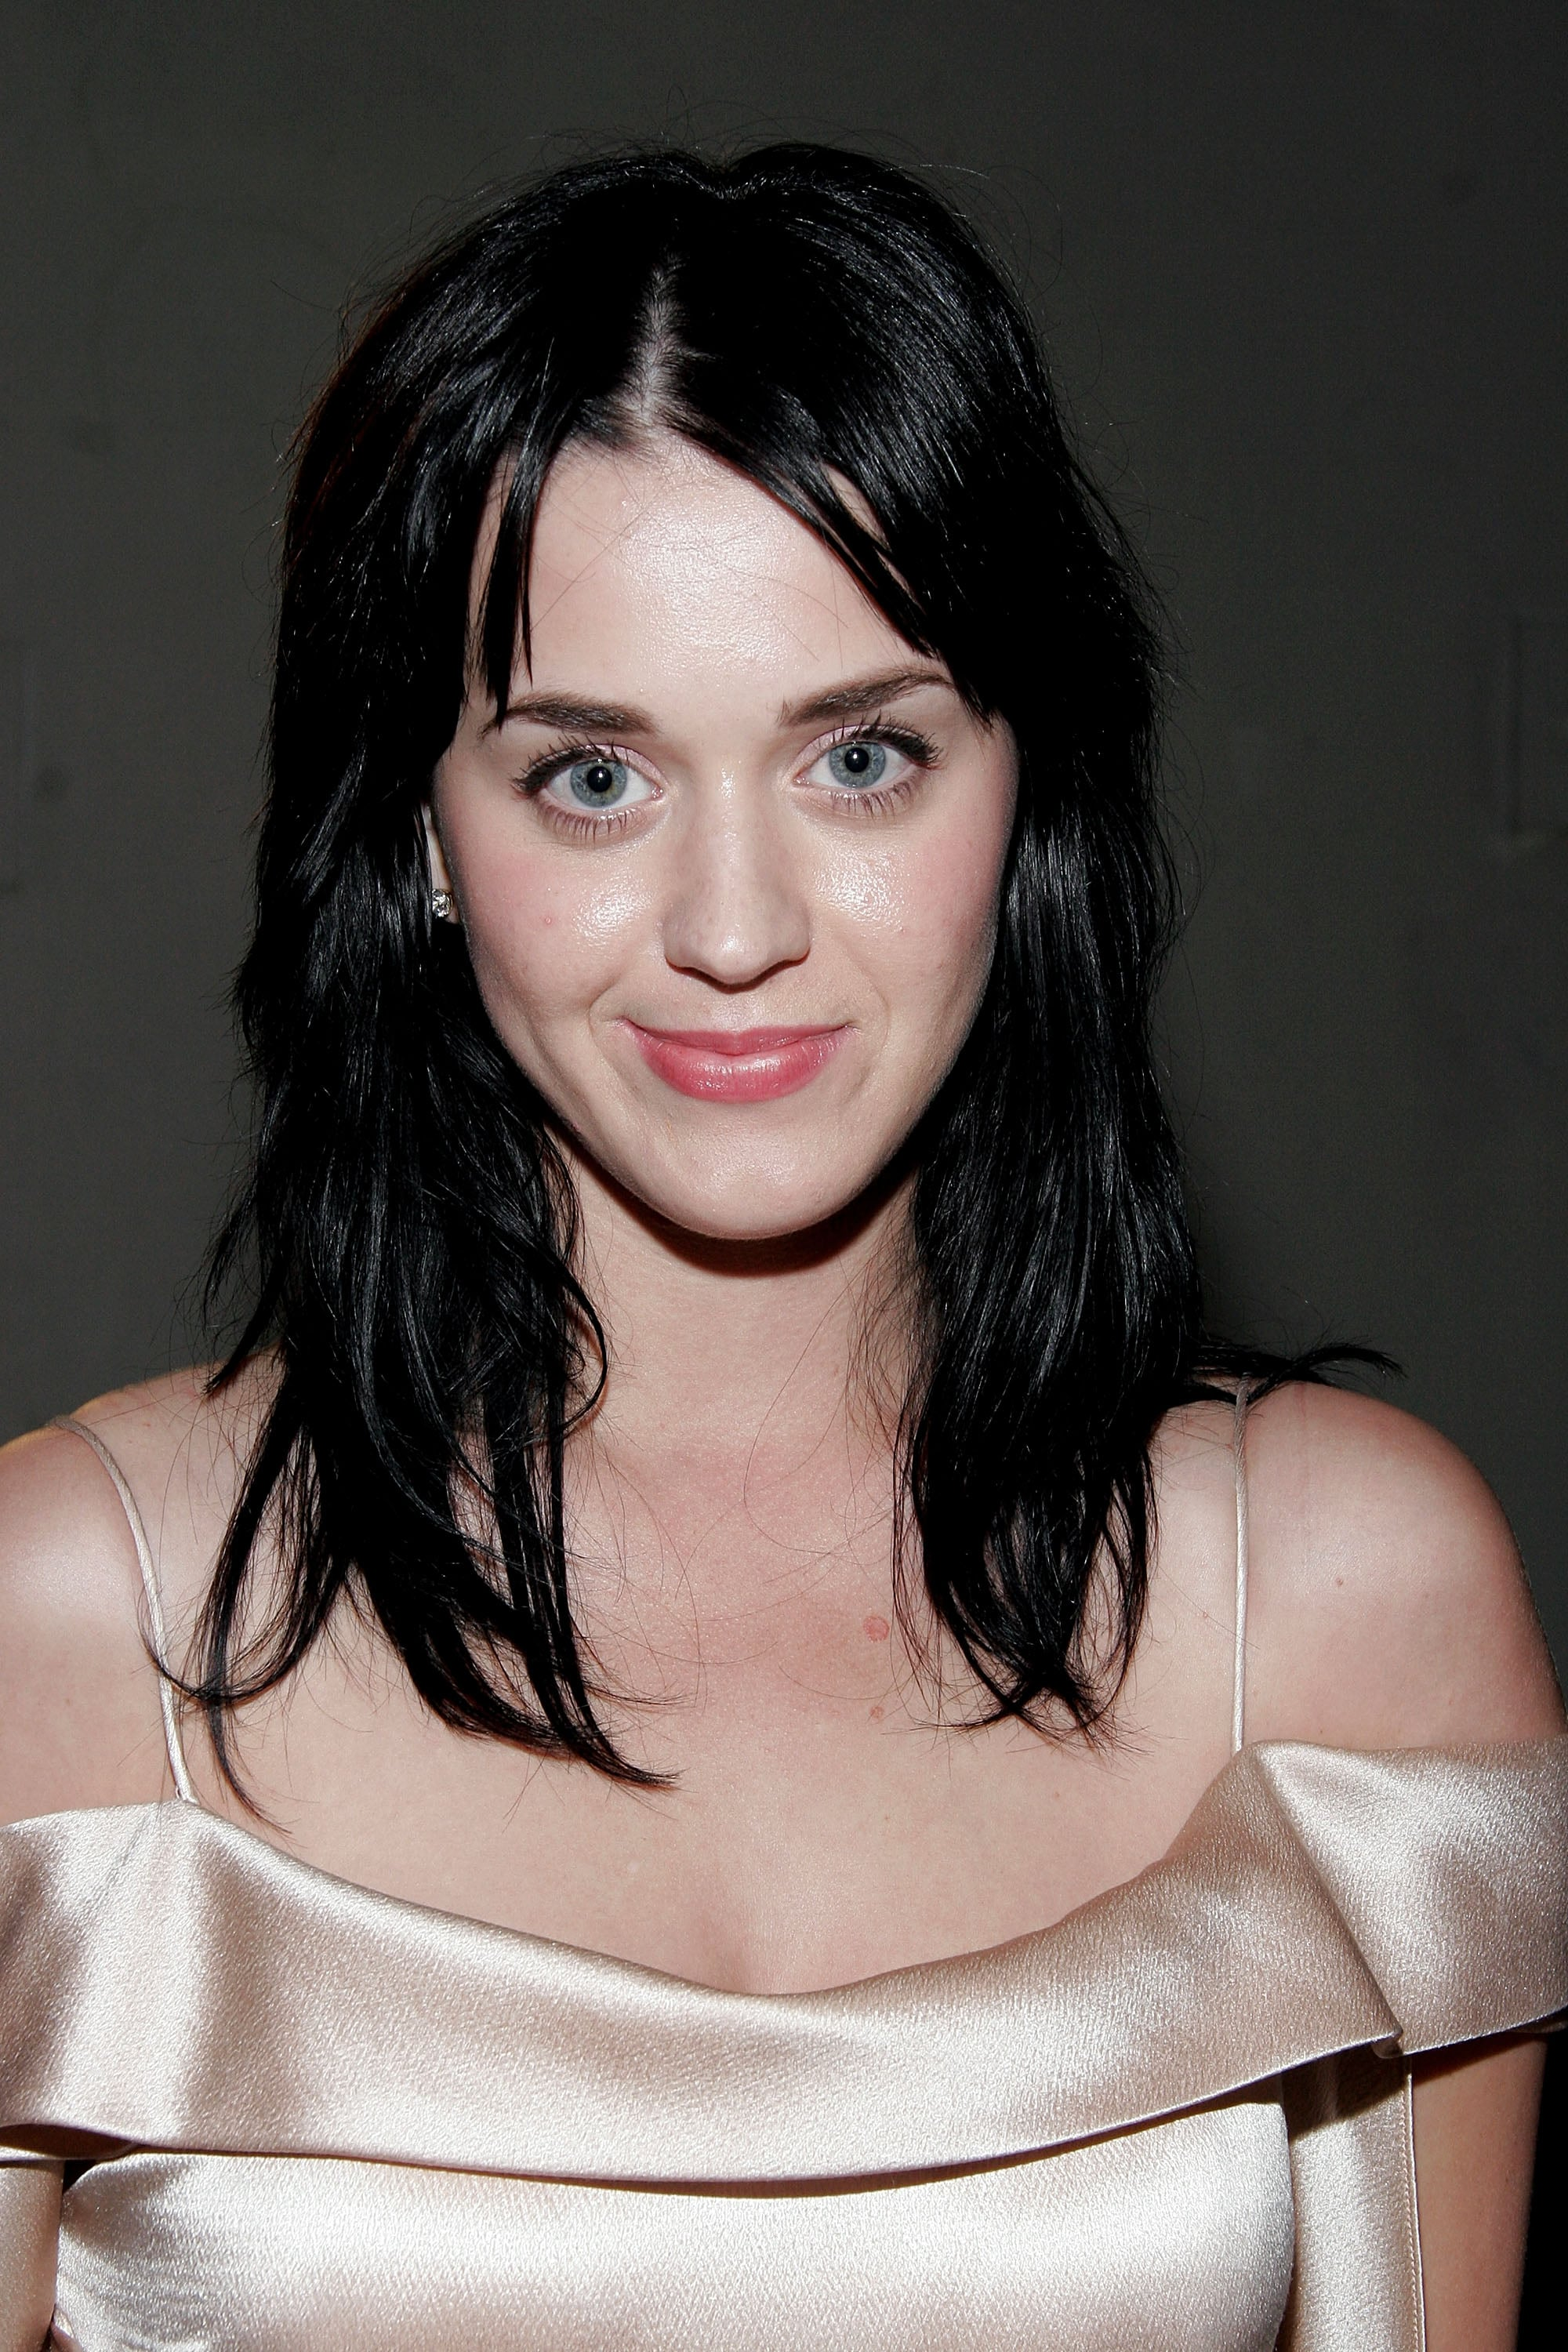 Perry gallery katy Katy Perry